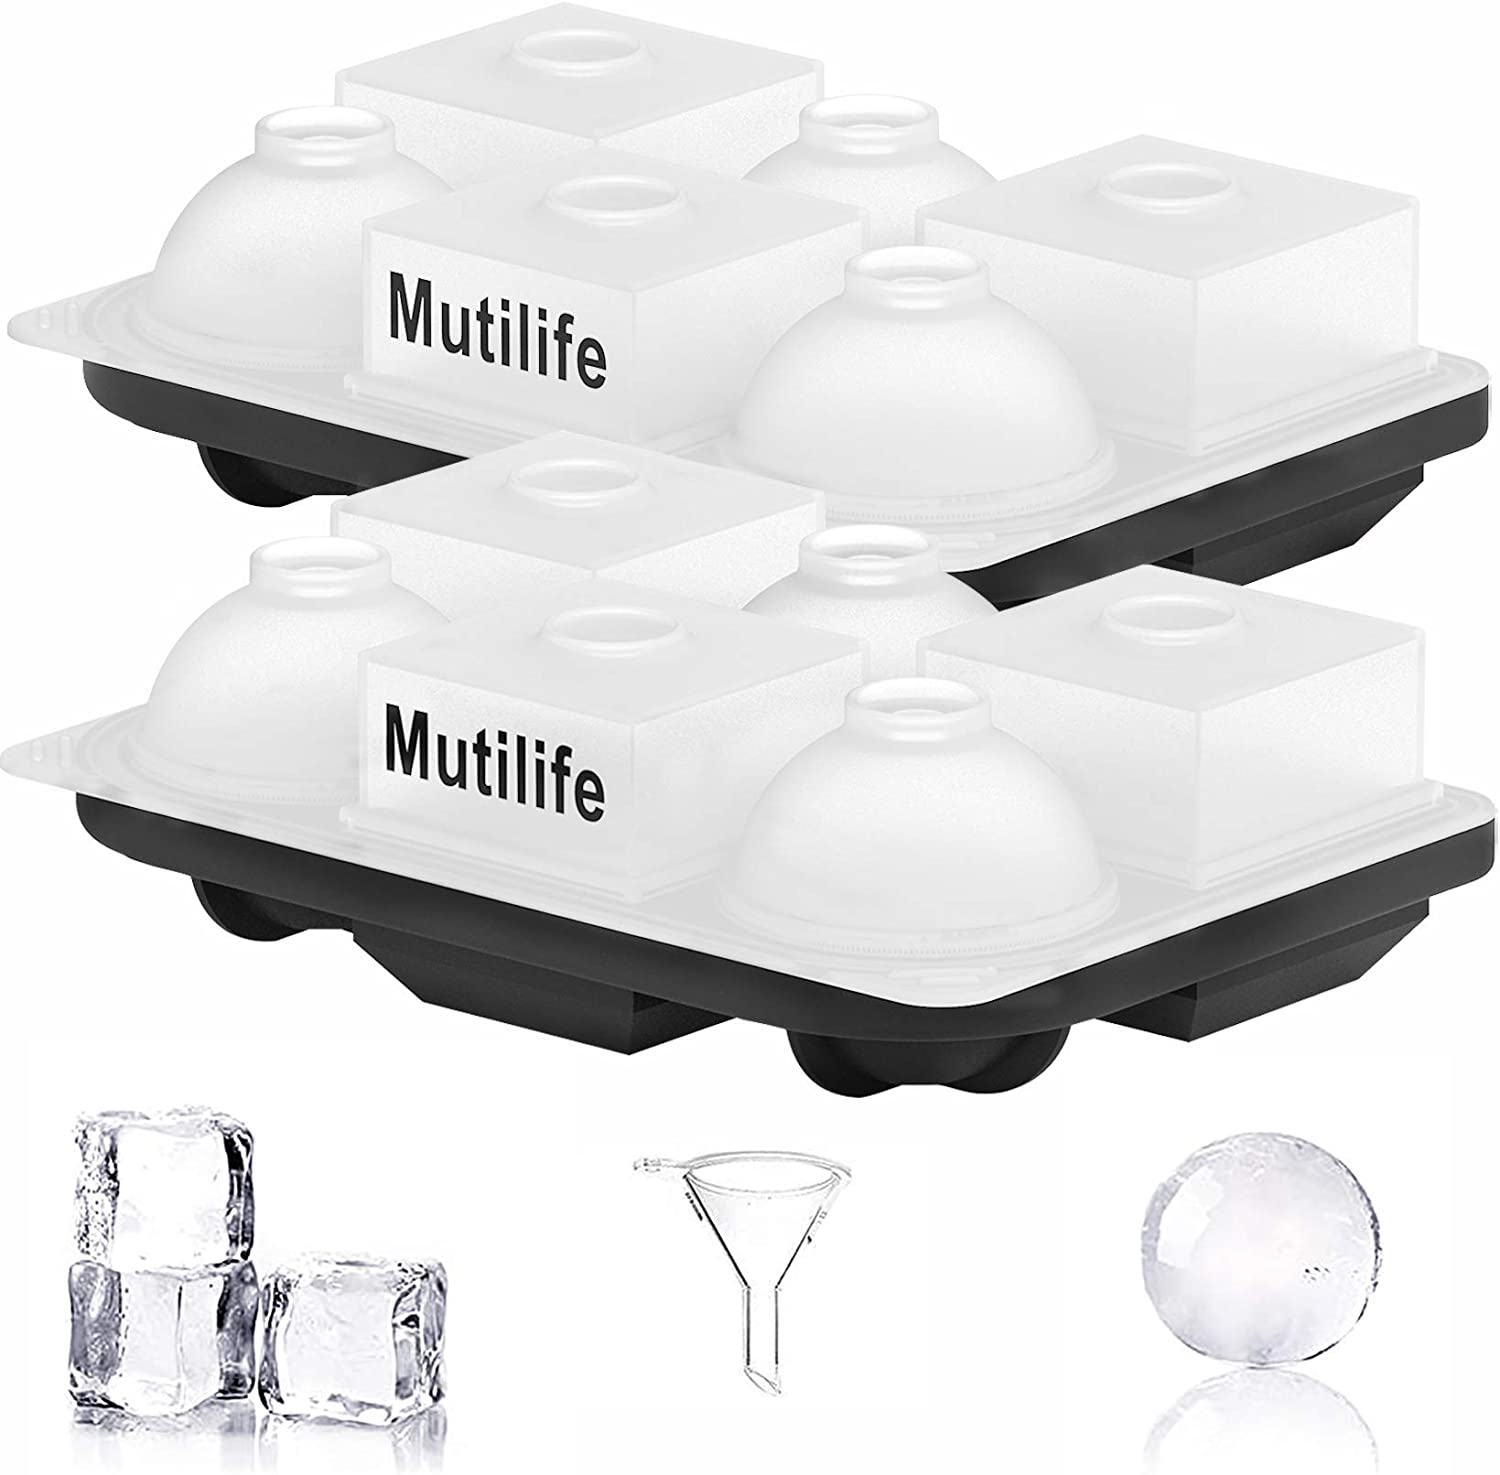 Square Ice Cube Molds, Mutilife Silicone Ice Cube Mold Large Square Ball Ice Molds with Lid 6 Cavity for Chilling Baby Food Whiskey Cocktail Drinks Reusable and BPA Free (2 Pack )